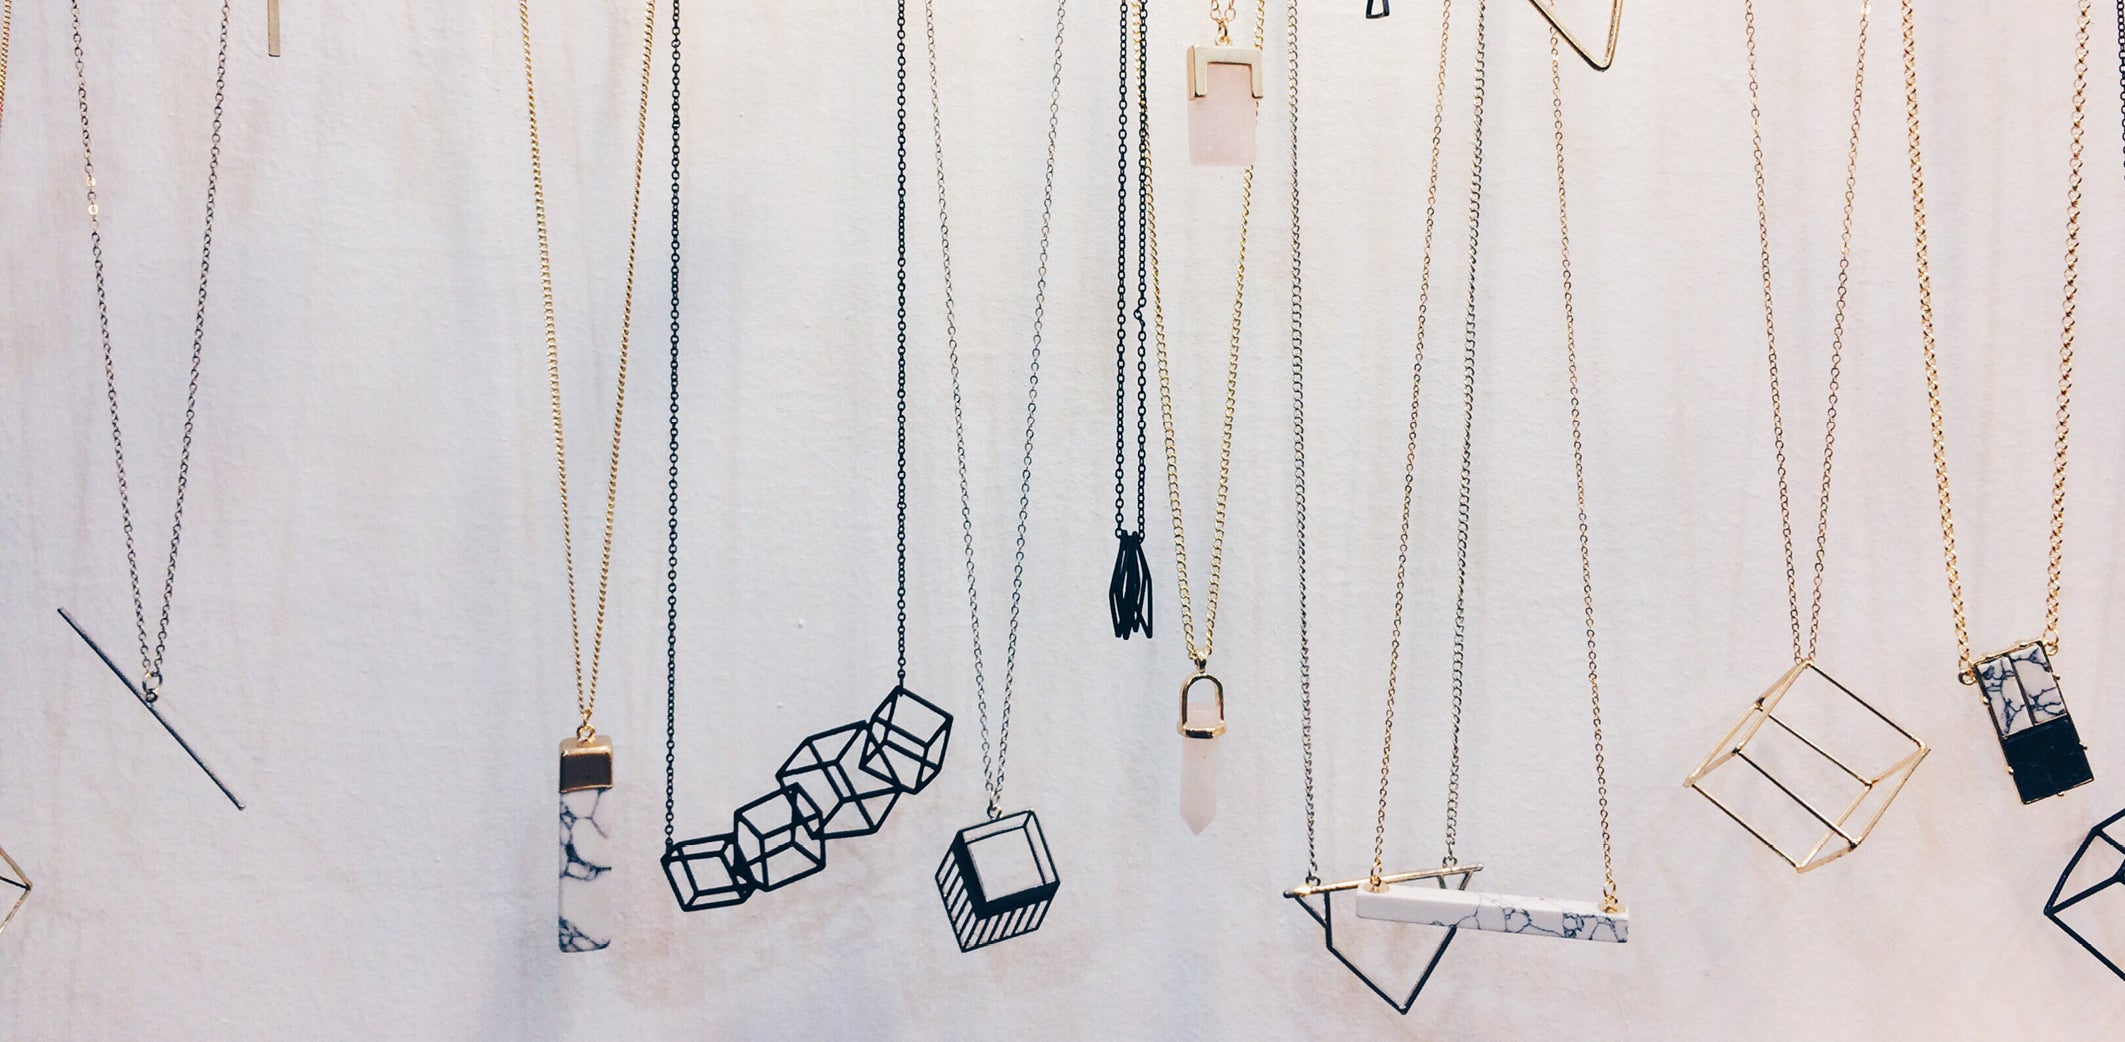 Minimalist Sculptural Jewellery - Mini Treasures For Every Day Outfits